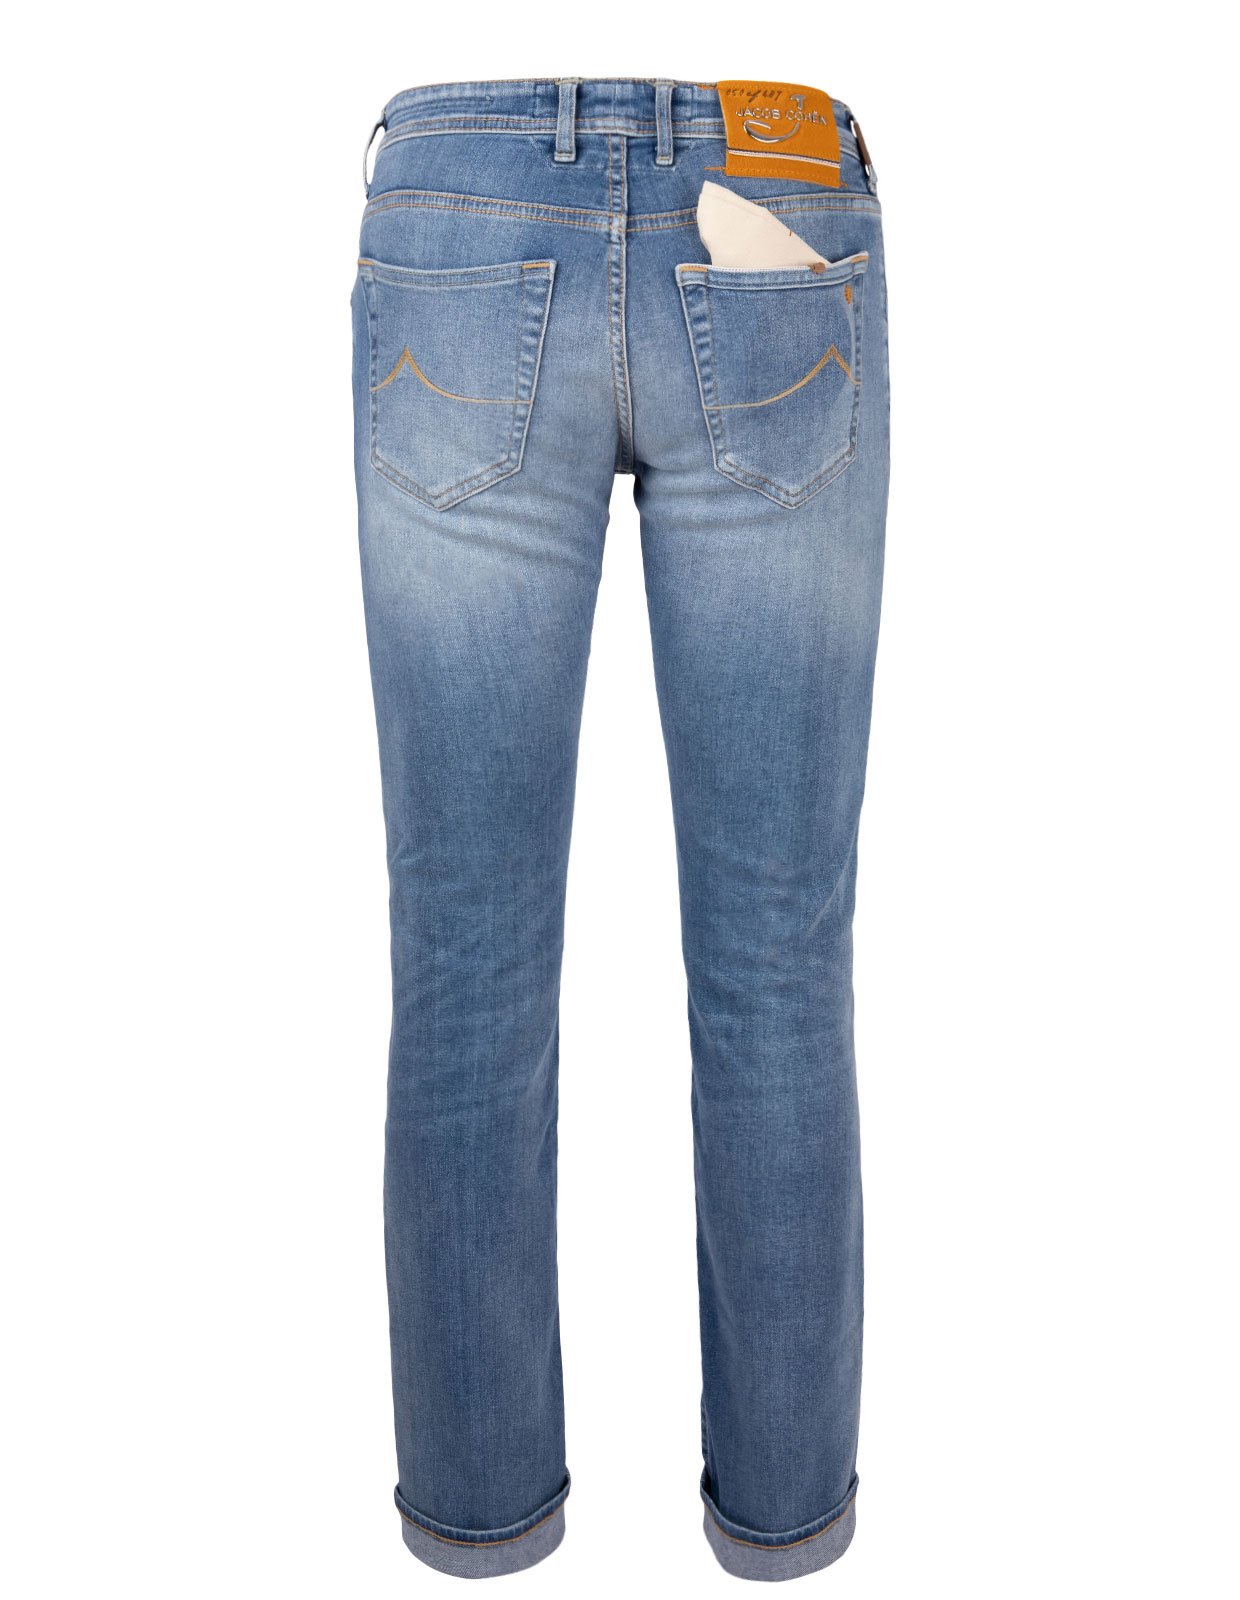 J622 Limited Jeans Denim Stretch Light Wash